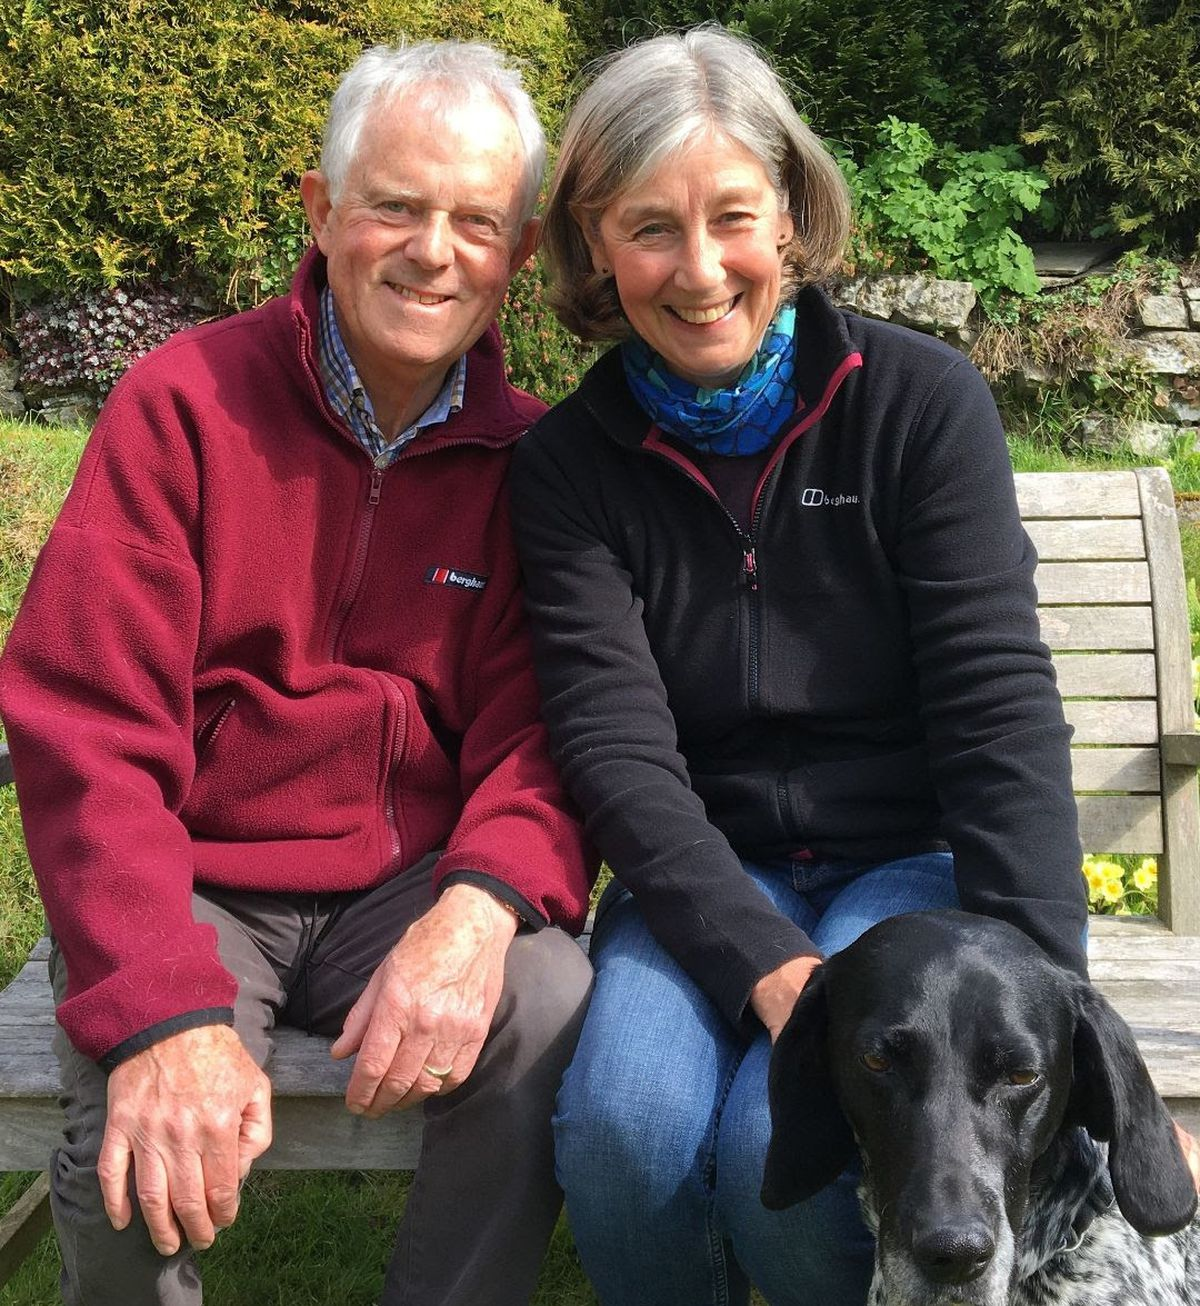 Steve and Juliet Gibbon, with their dog, Poppy